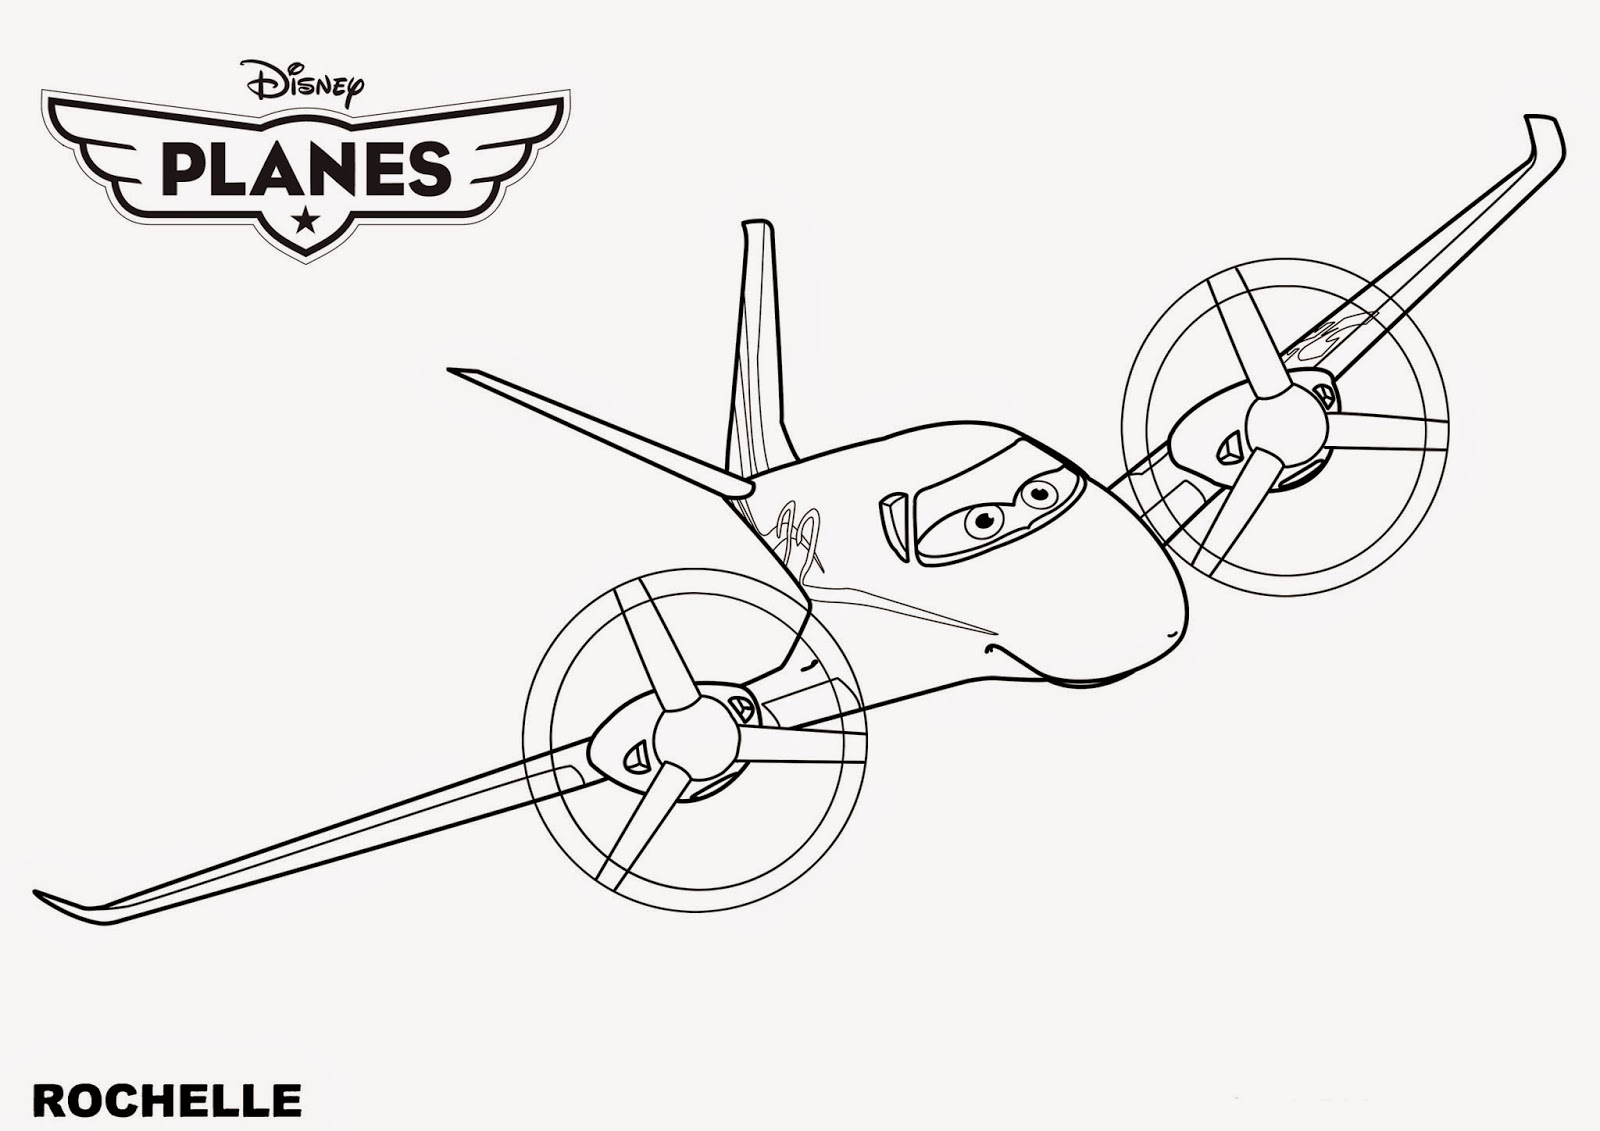 Coloring Pages For Disney Planes : Coloring pages disney planes free and